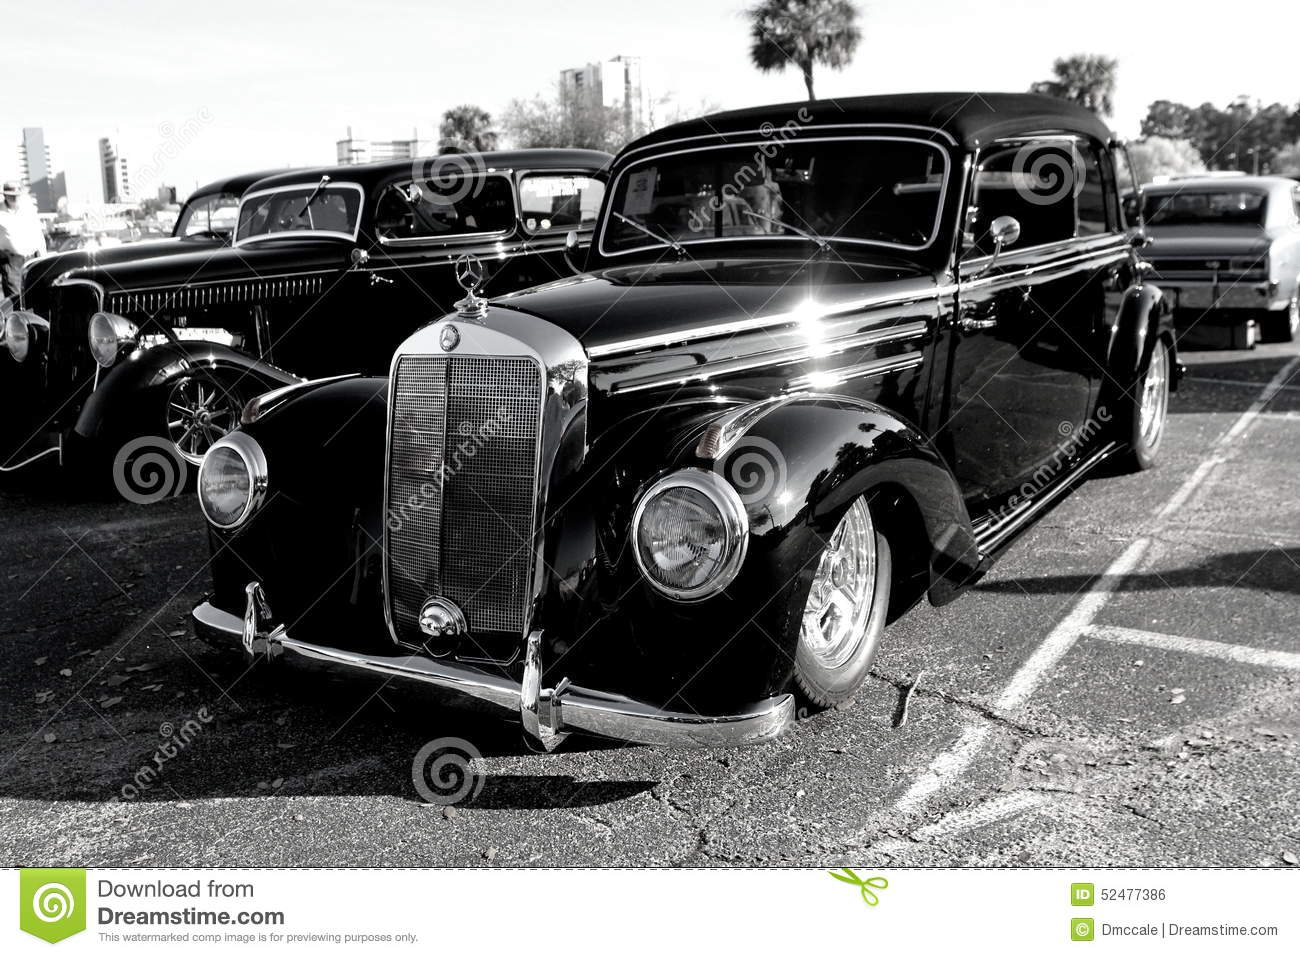 Car Show Black Mercedes Benz Editorial Photo - Image of auto, ride ...